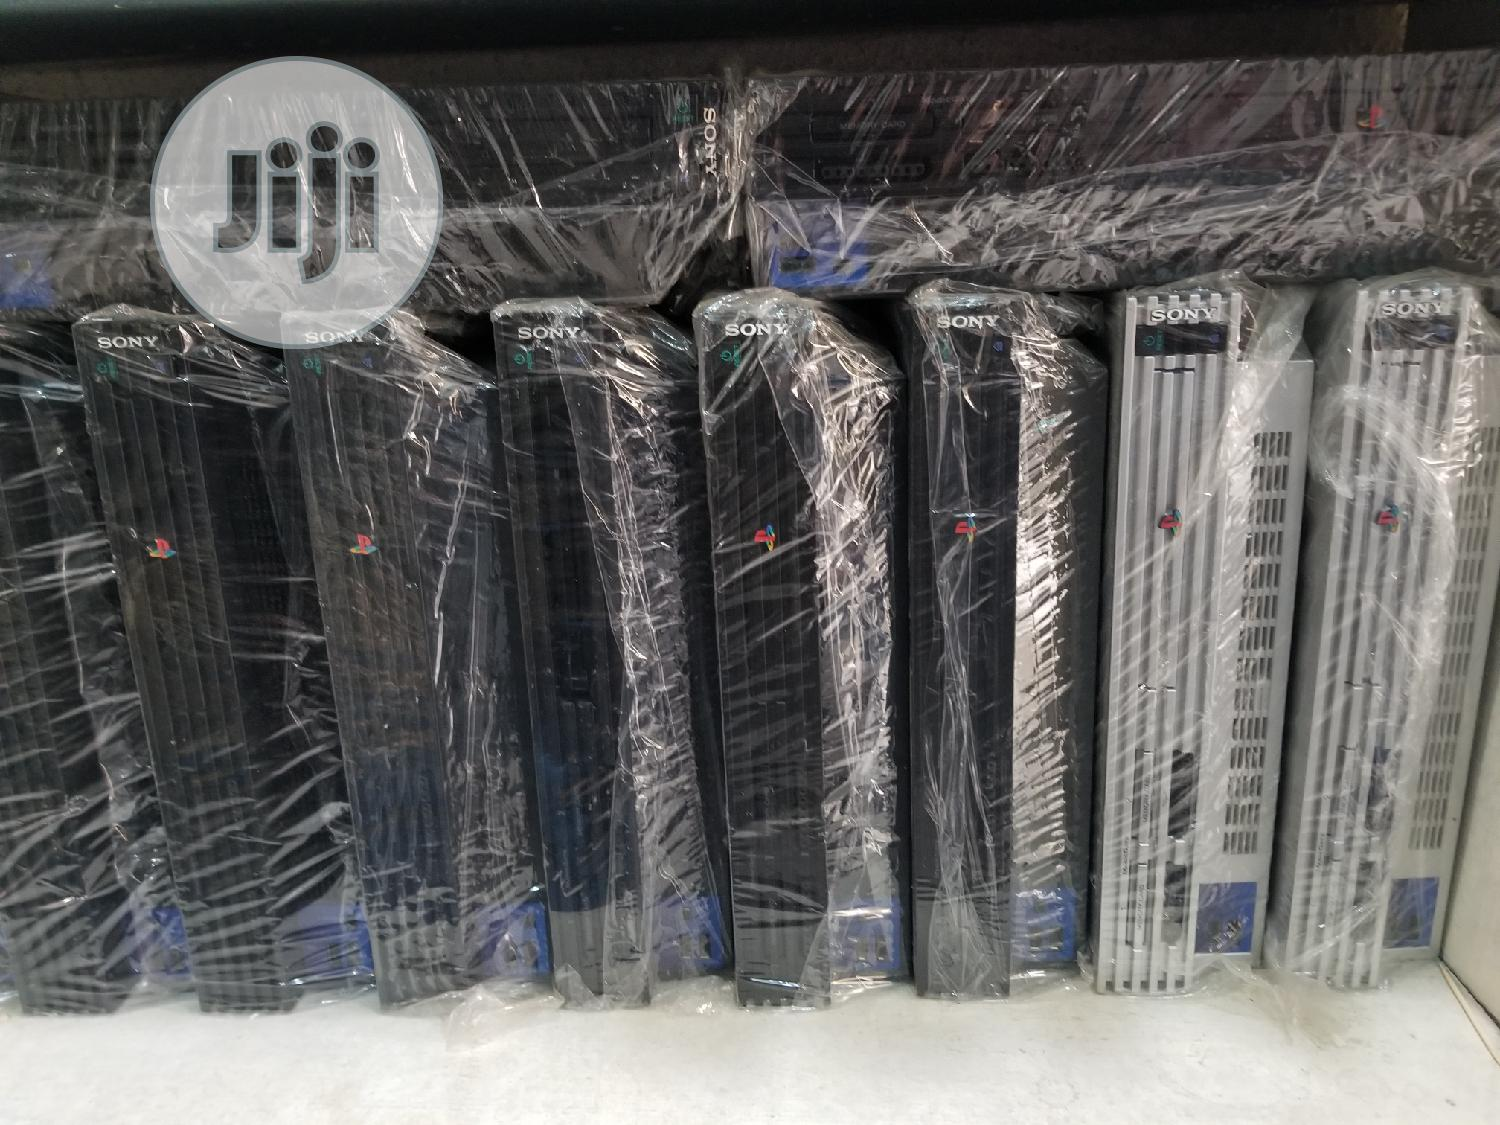 Playstation 2 ( Ps2) Console   Video Game Consoles for sale in Ikeja, Lagos State, Nigeria